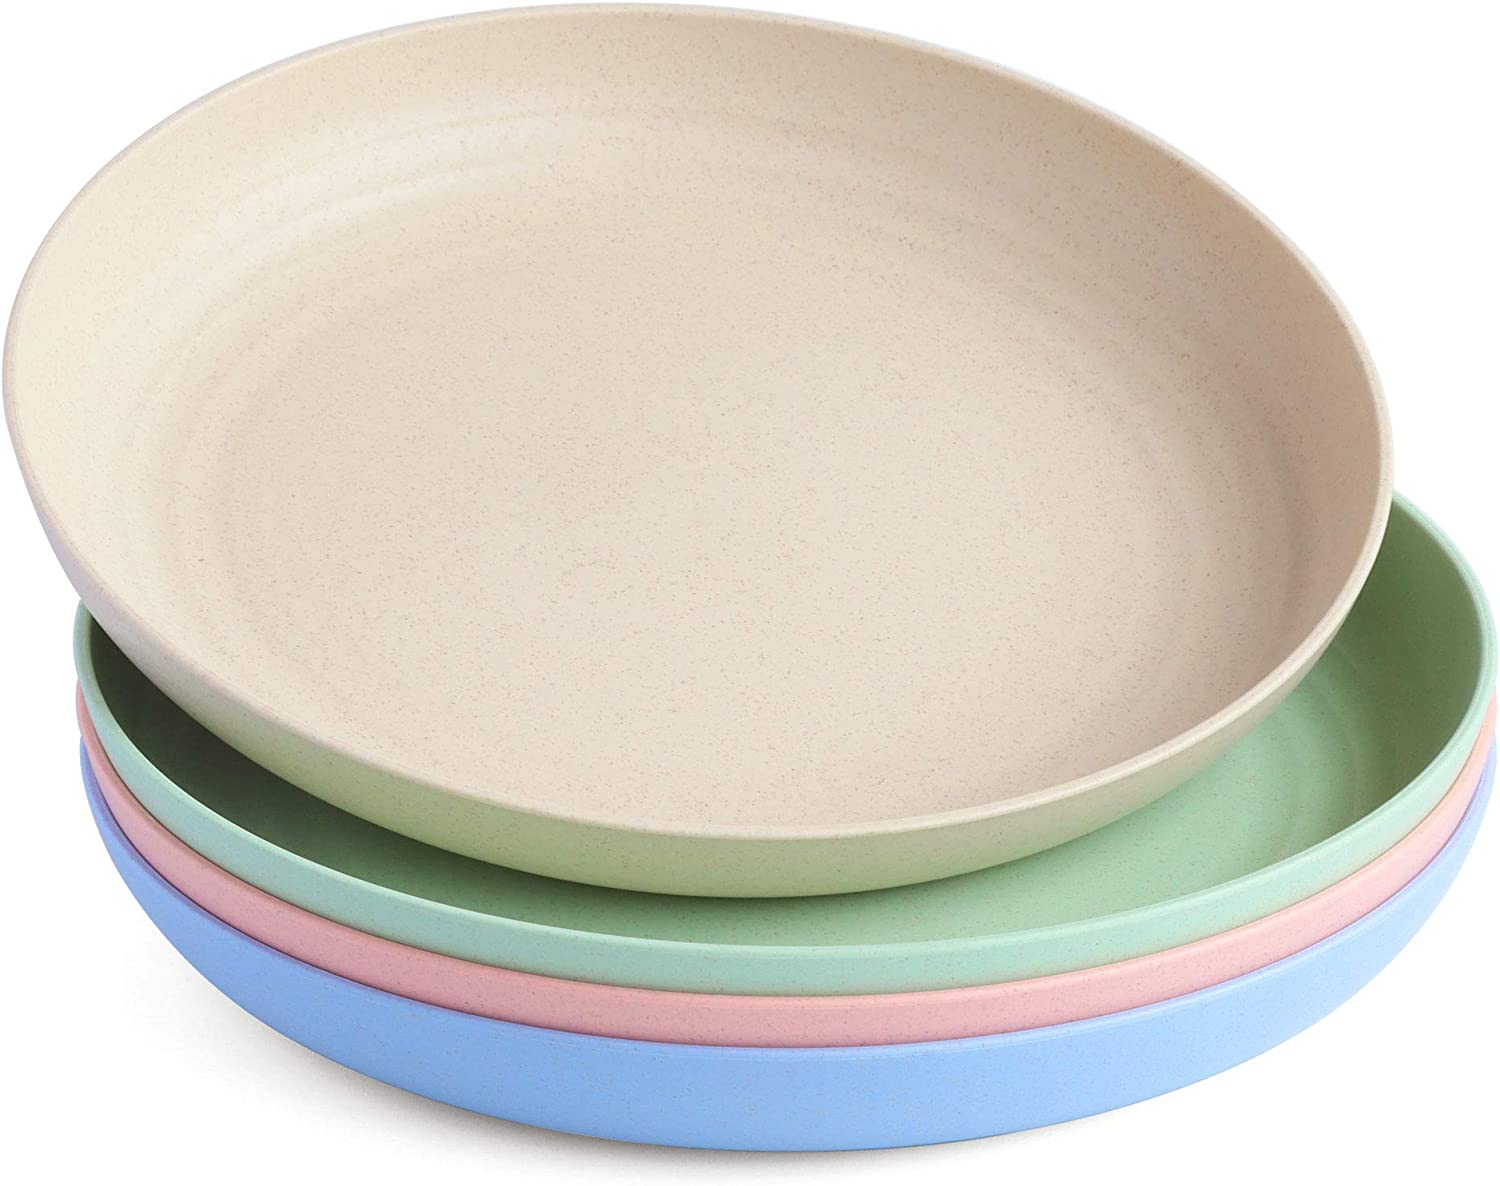 NAWOVAO Wheat Straw 10 Inch Plates, Reusable Unbreakable Dishes Set 4 Multicolor Microwave Safe Lightweight Deep Dinner Plate, Dishwasher Safe